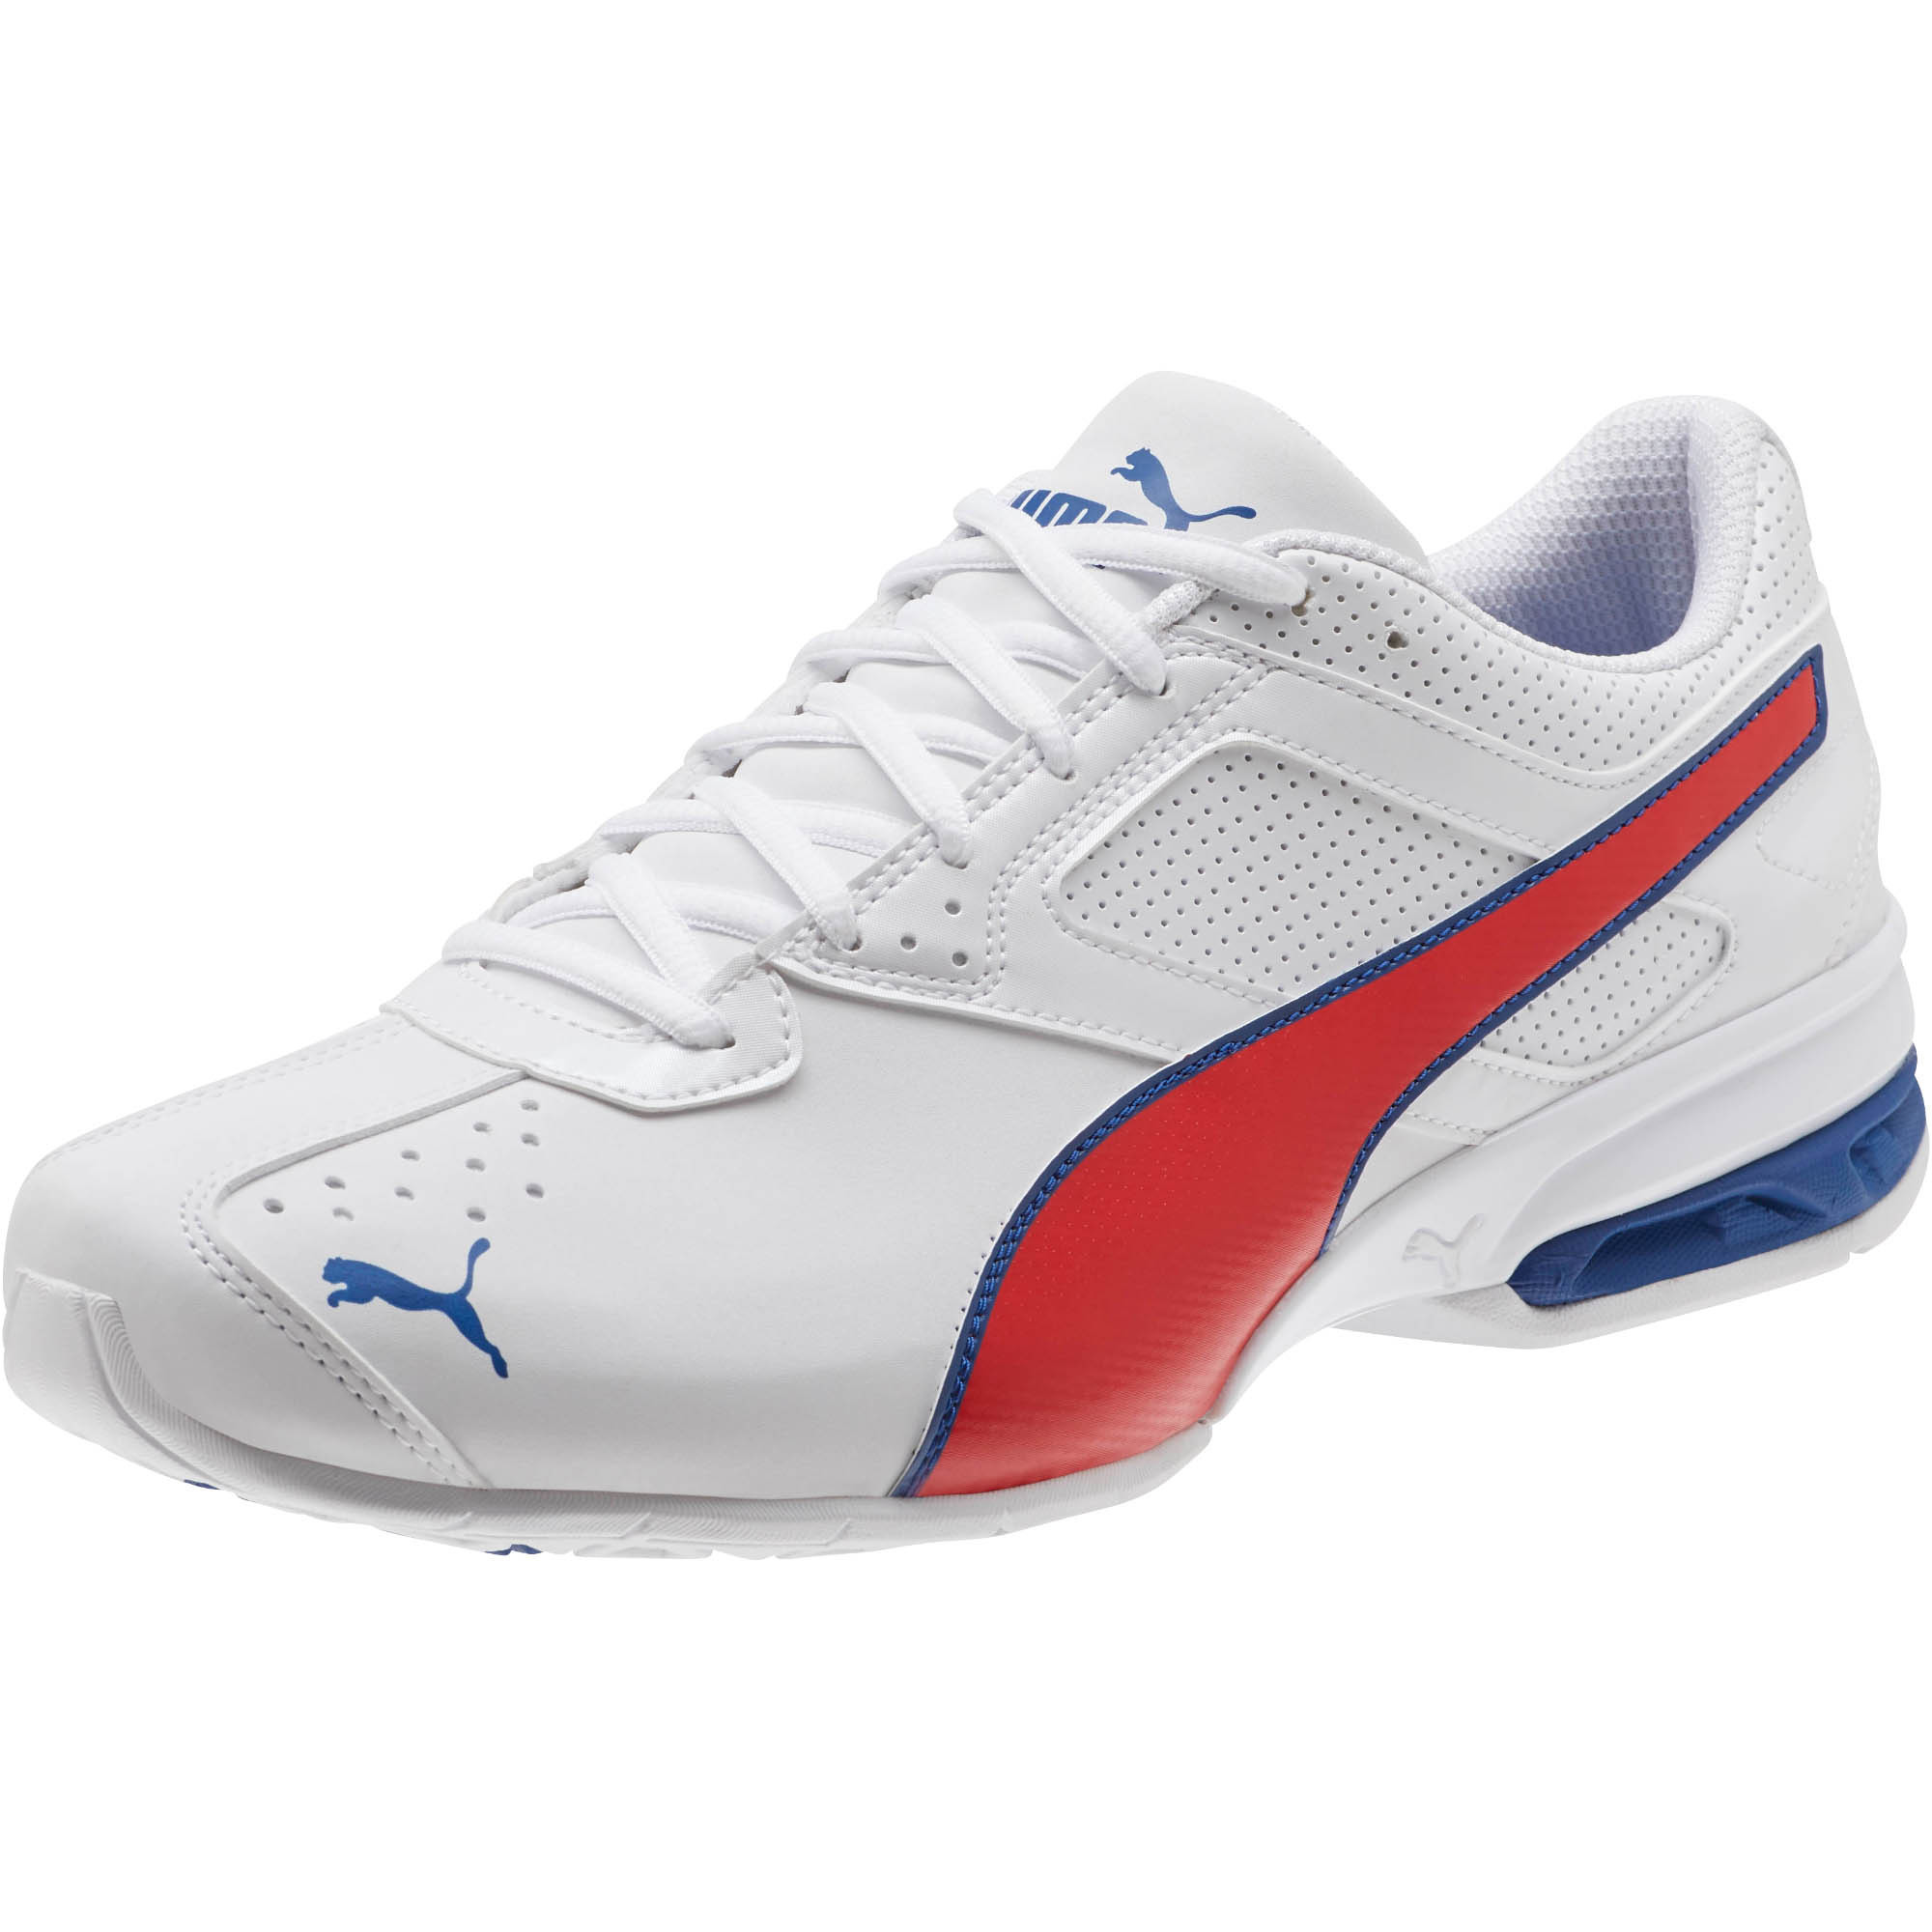 PUMA-Tazon-6-FM-Men-039-s-Sneakers-Men-Shoe-Running thumbnail 19